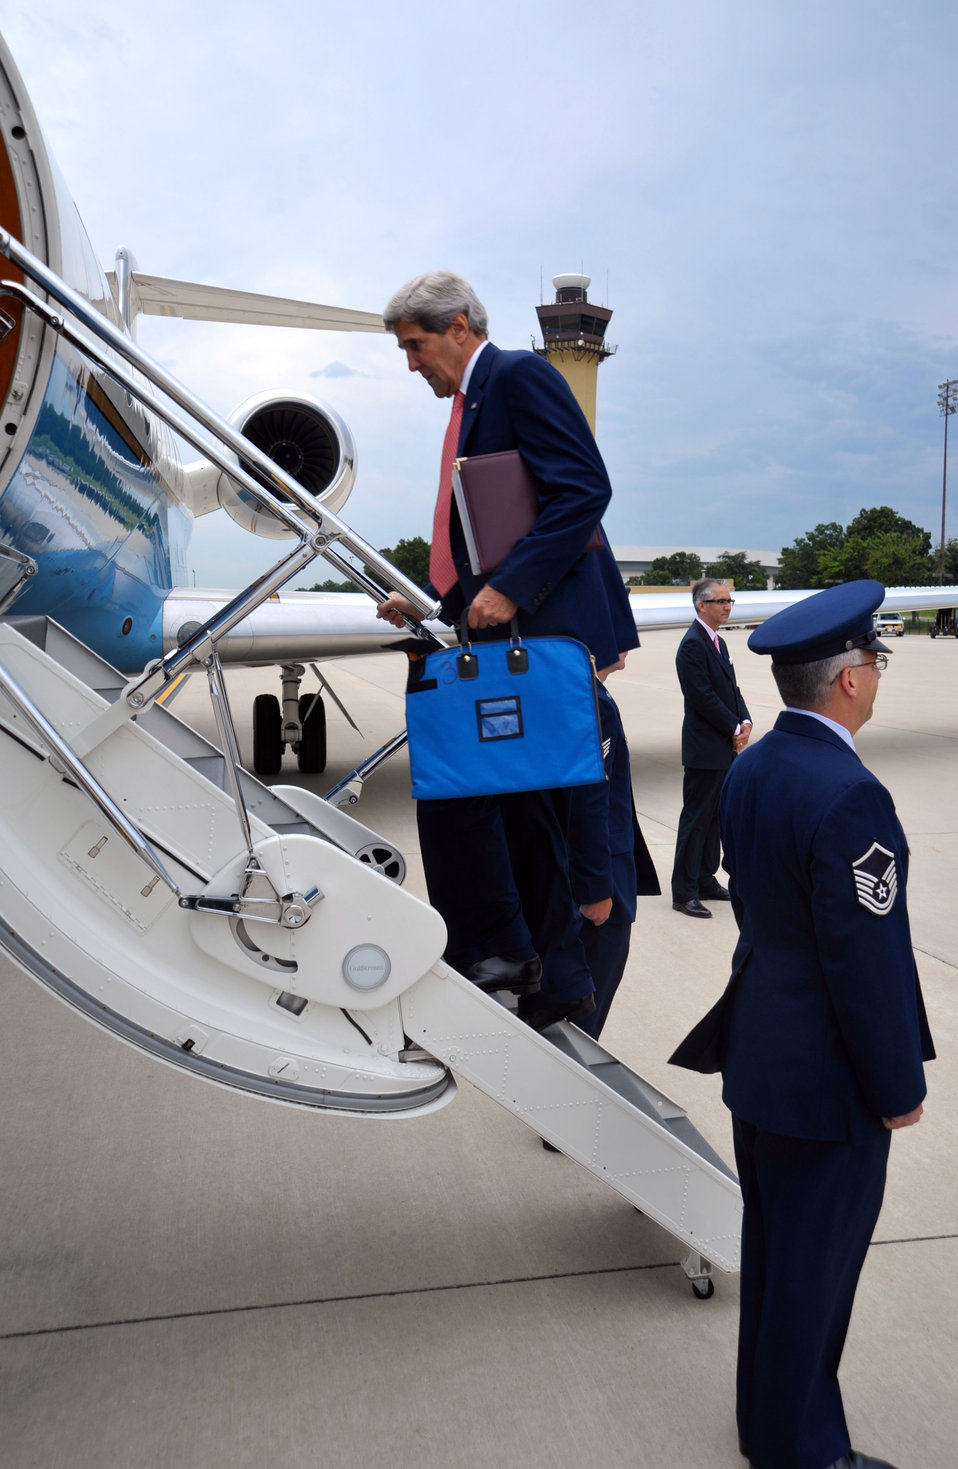 Secretary Kerry Boards the Plane